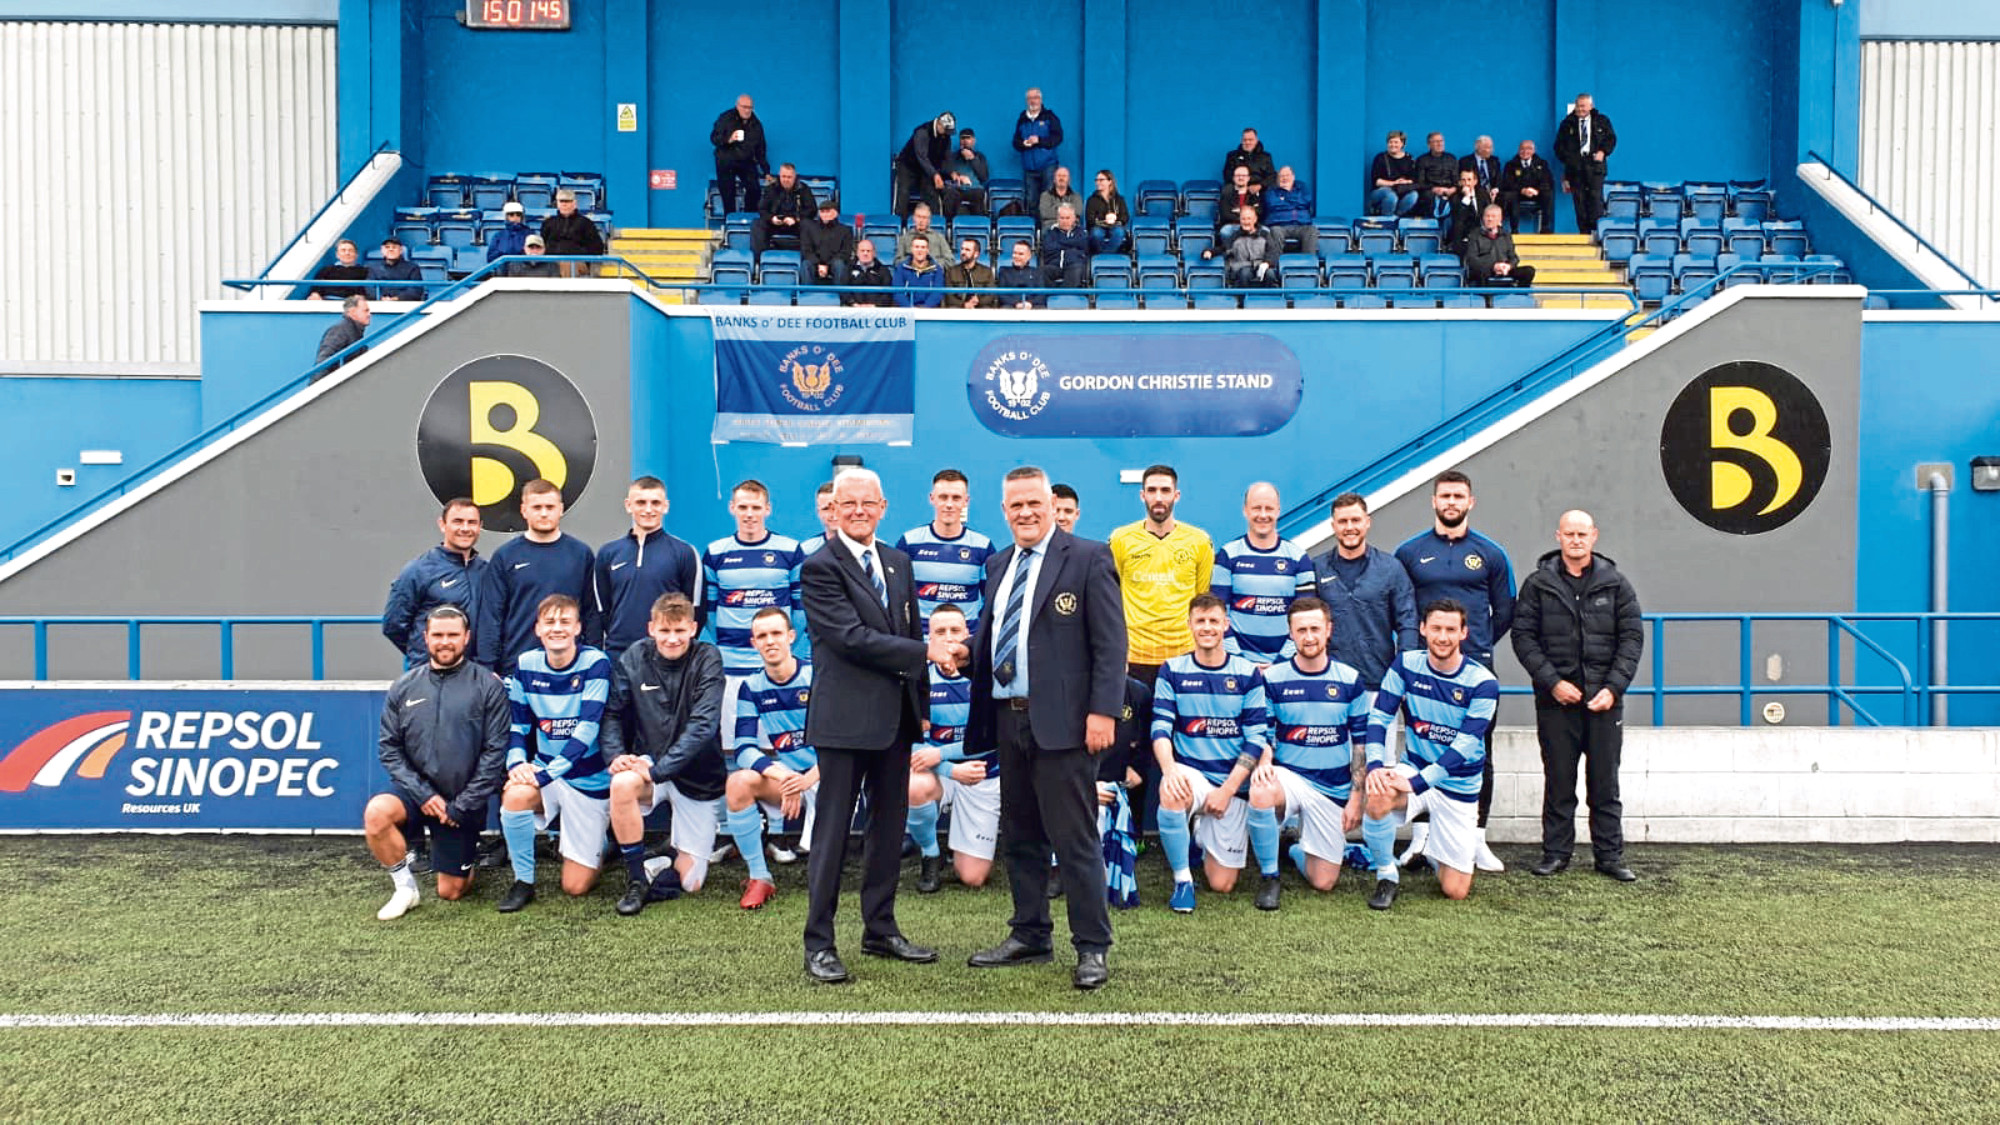 President Brian Winton, right, is pictured with vice president Gordon, with the Dee first team in the background.